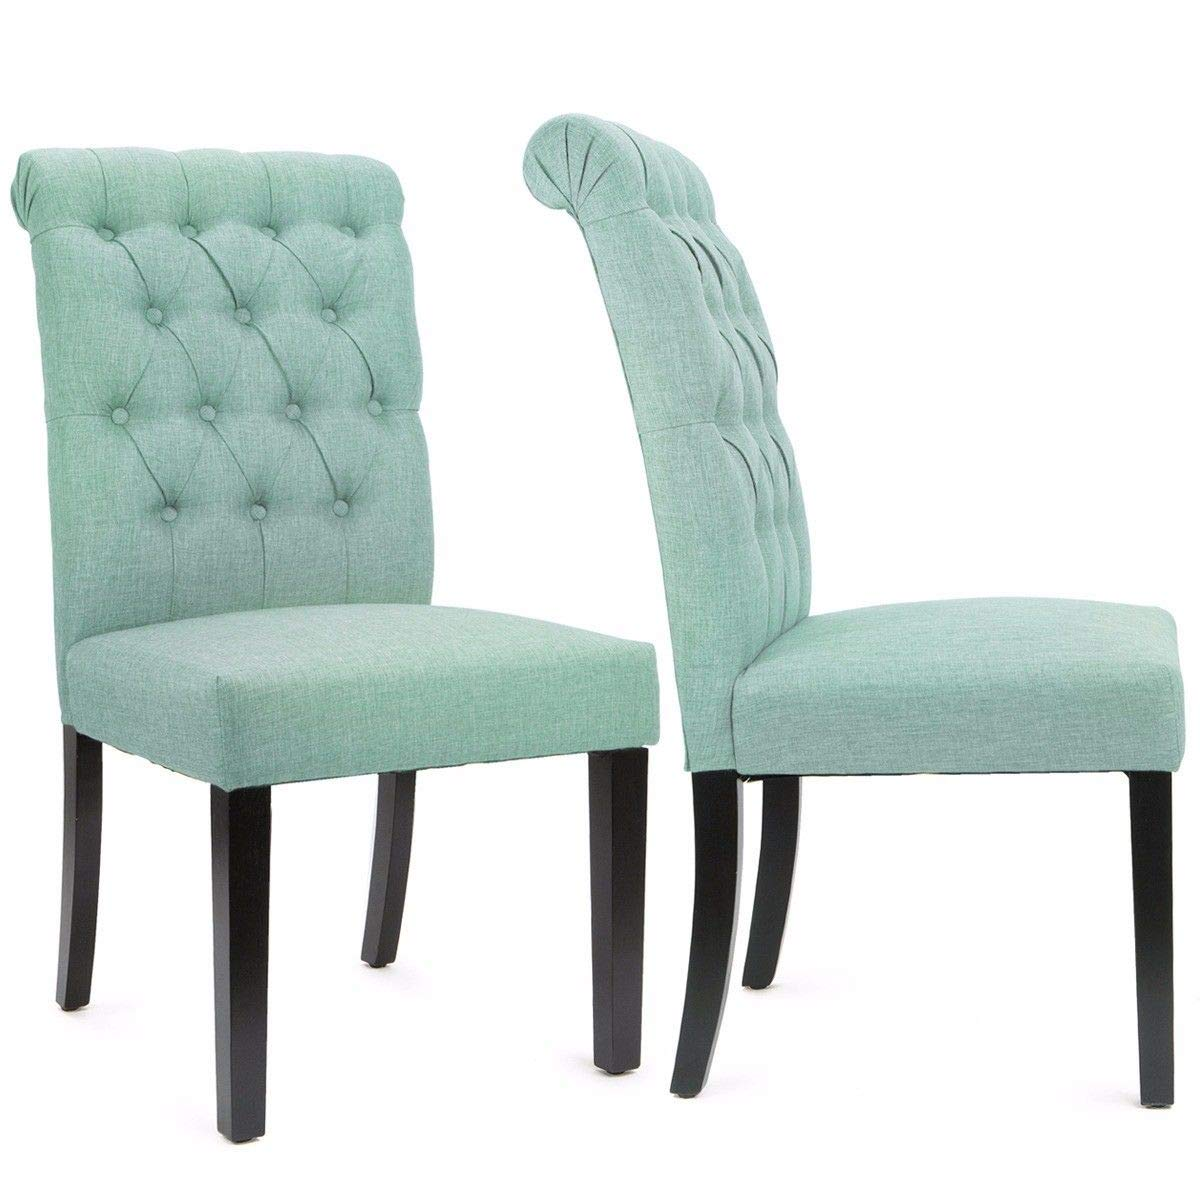 XtremepowerUS Dining Room Side Accent Armless Chair Tufted Padded Seat Backrest Chairs Wooden Legs, Set of 2 (Sea Mist)